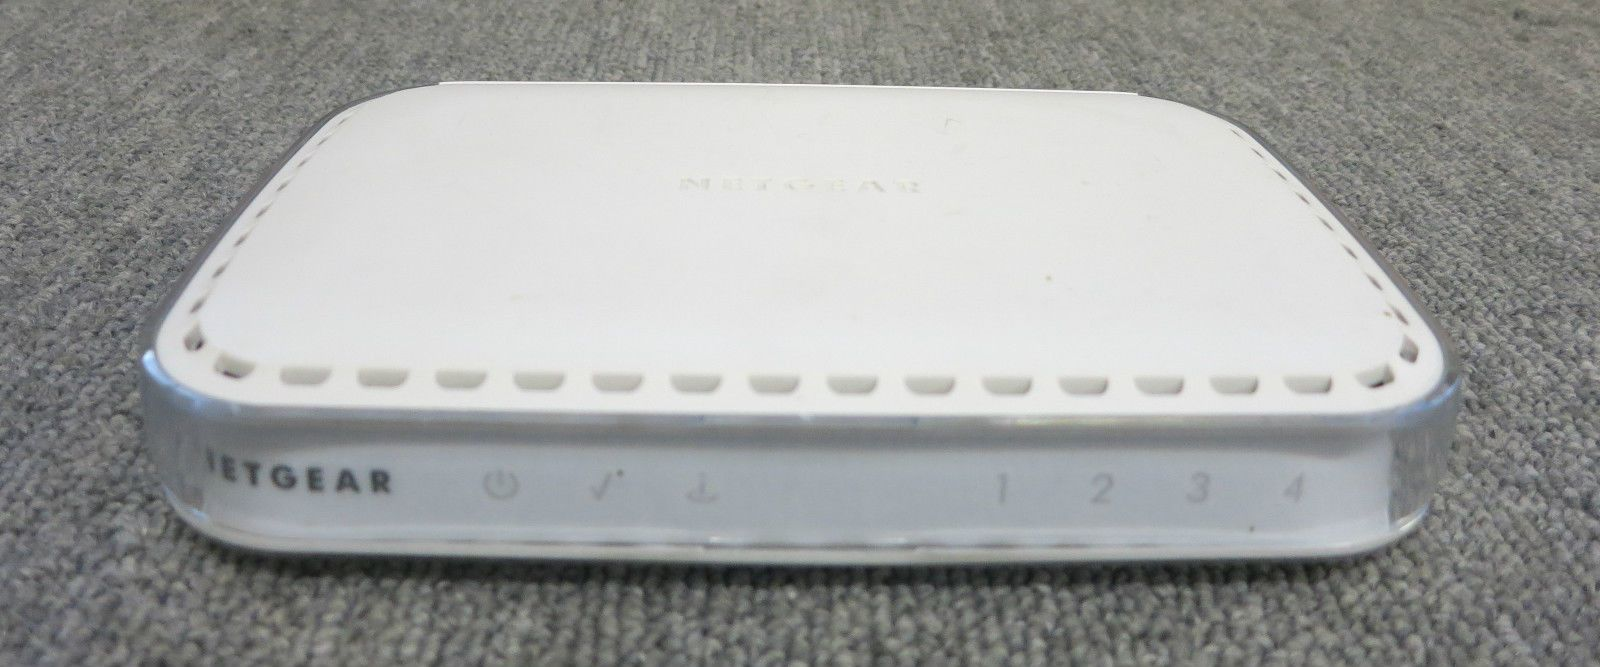 Erfreut Best Wired Routers With Firewall Bilder - Elektrische ...